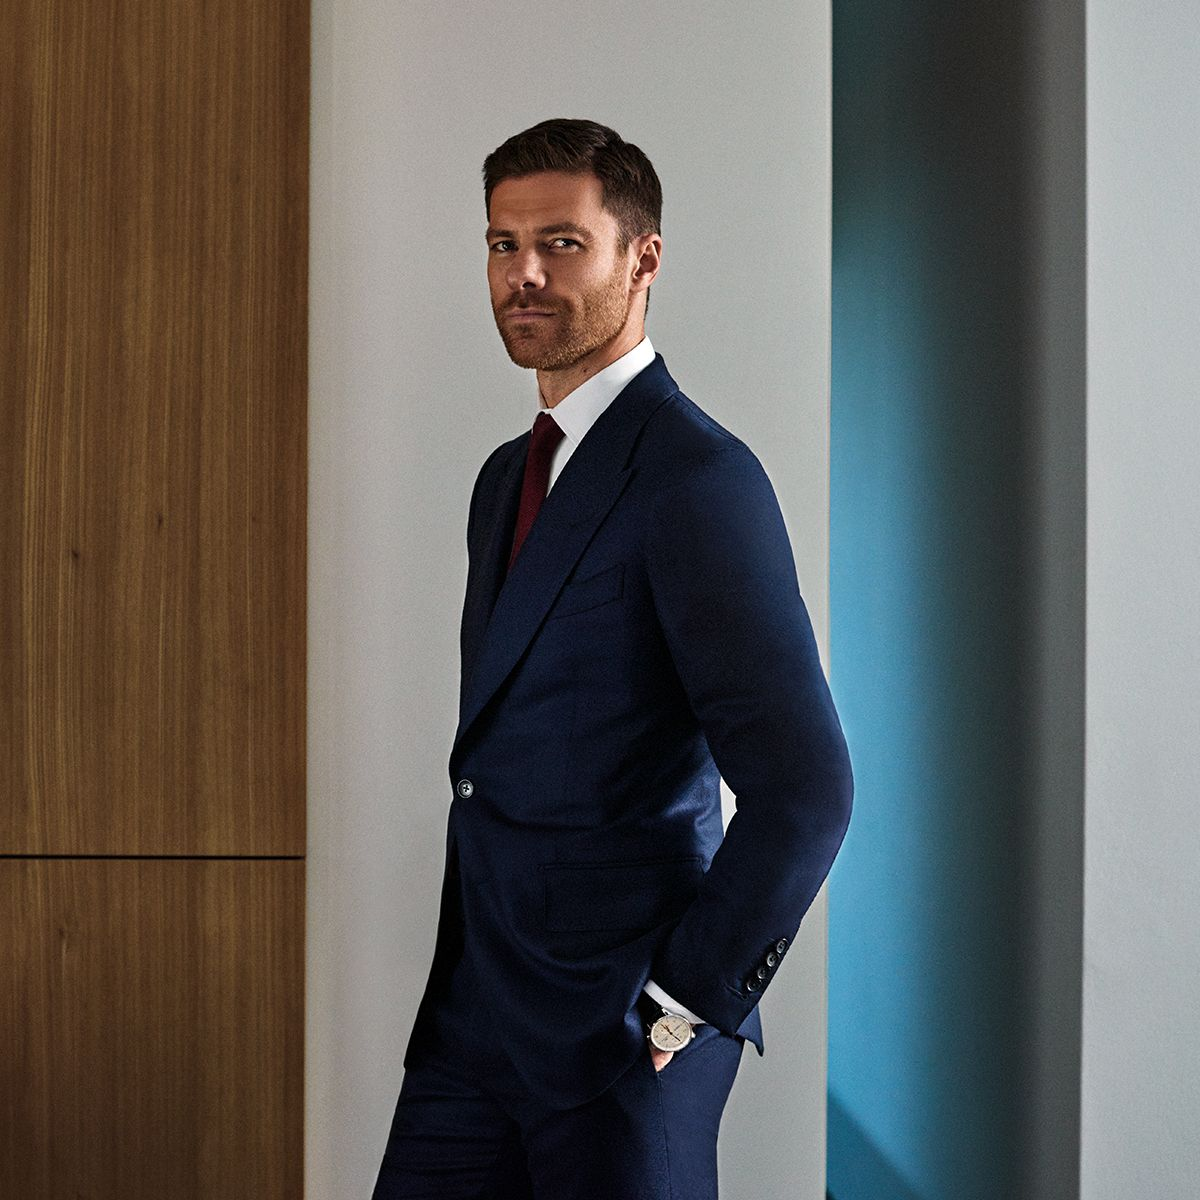 Le Meilleur Mr Xabi Alonso For Mr Porter Wearing Tom Ford Suit Jacket Ce Mois Ci